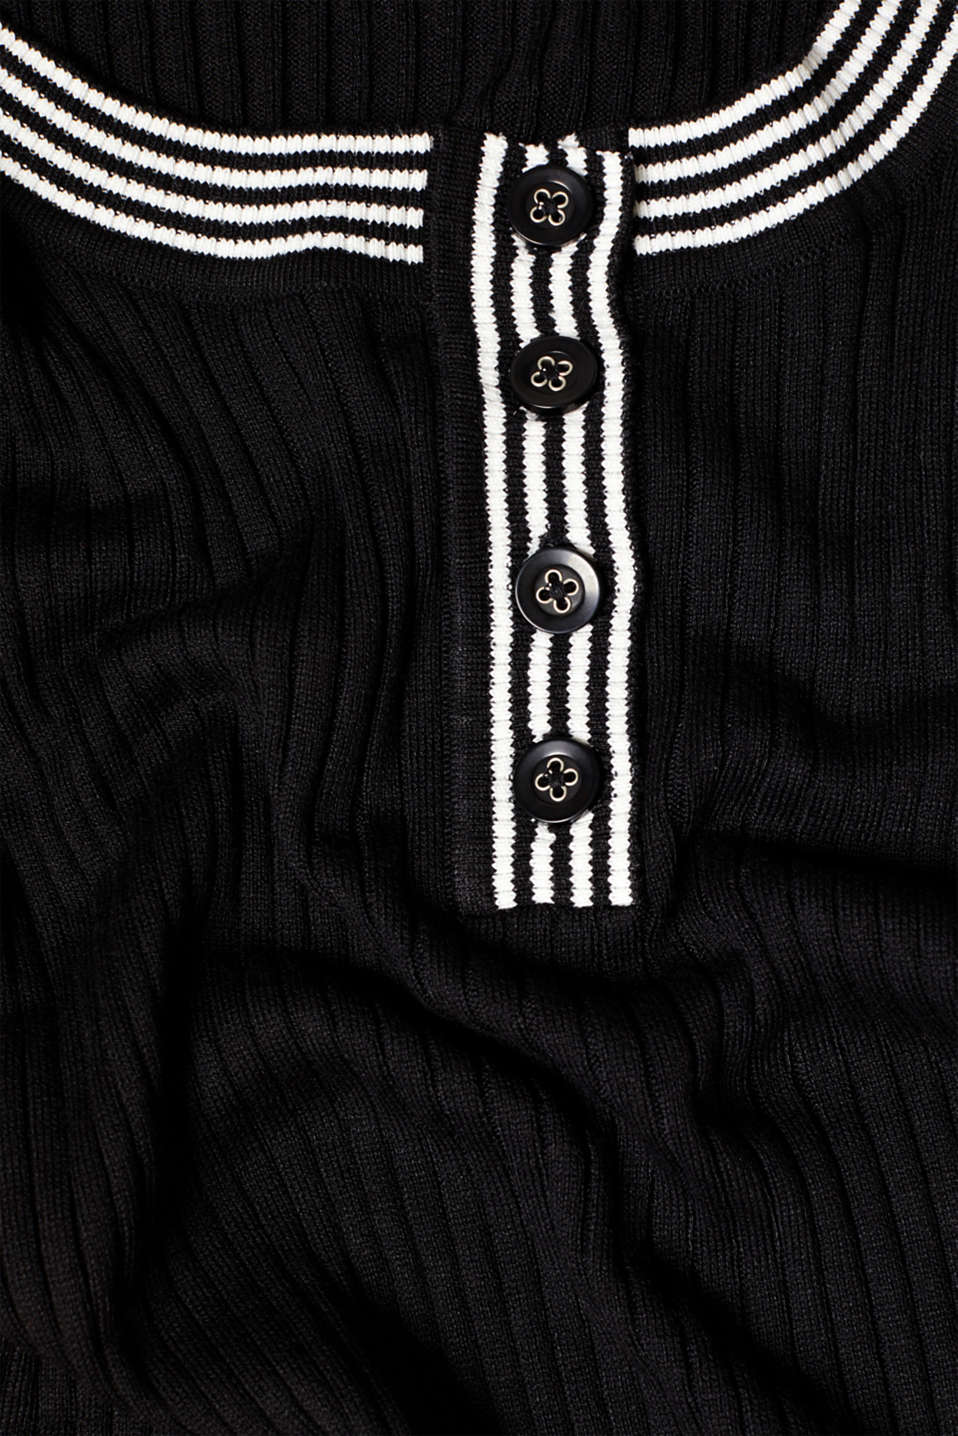 Short-sleeved jumper with button placket, recycled, BLACK, detail image number 4